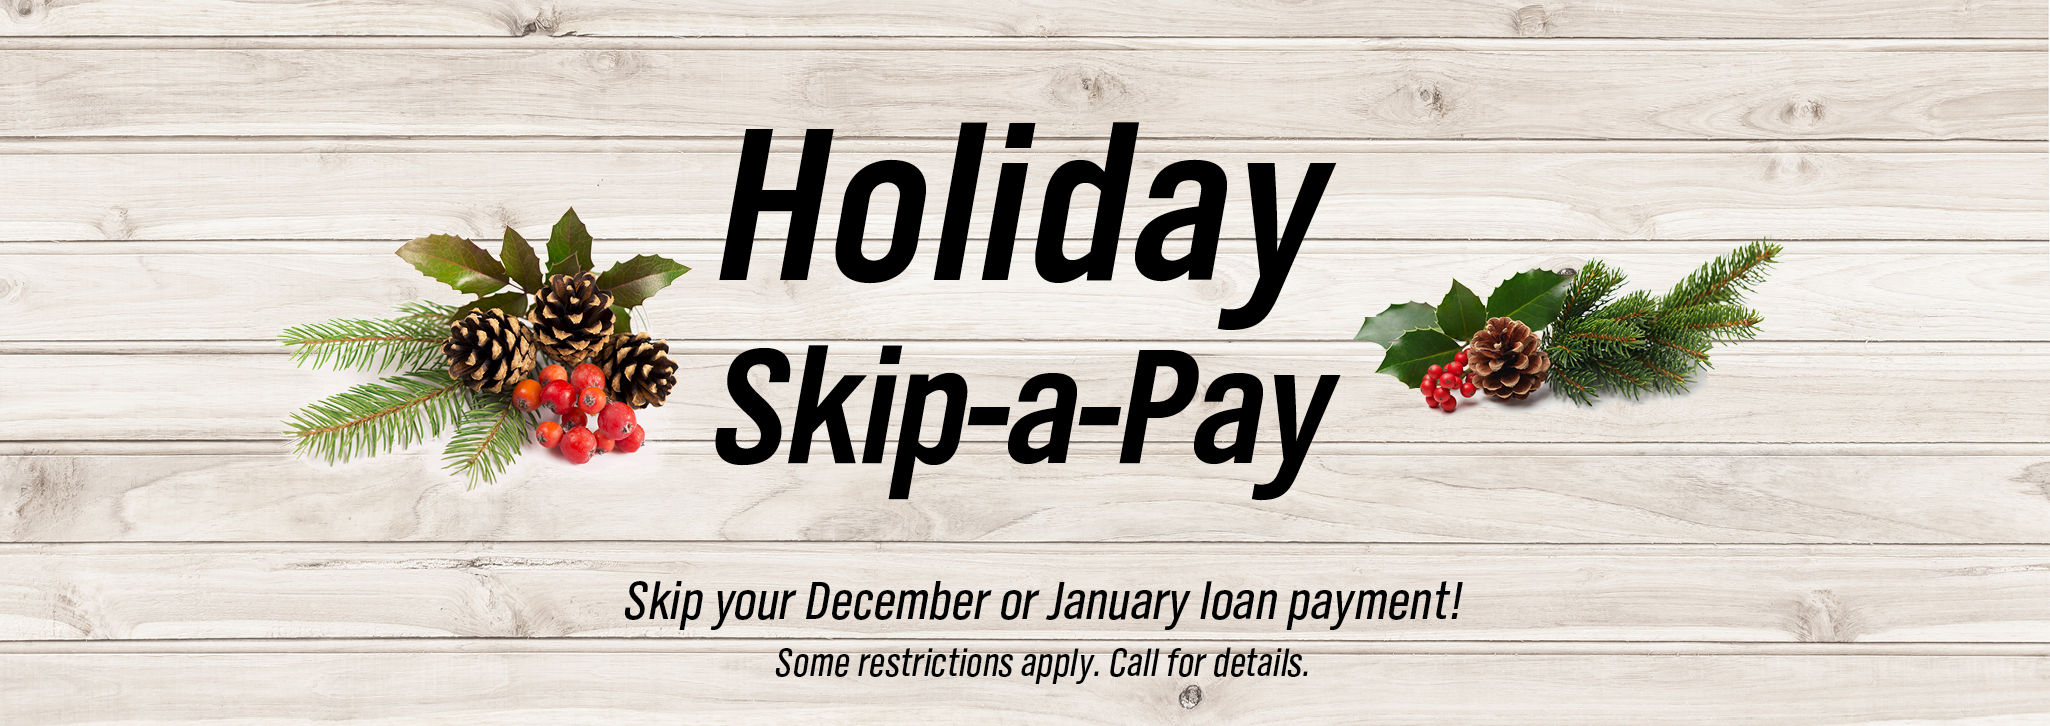 Holiday Skip-A-Pay for December or January